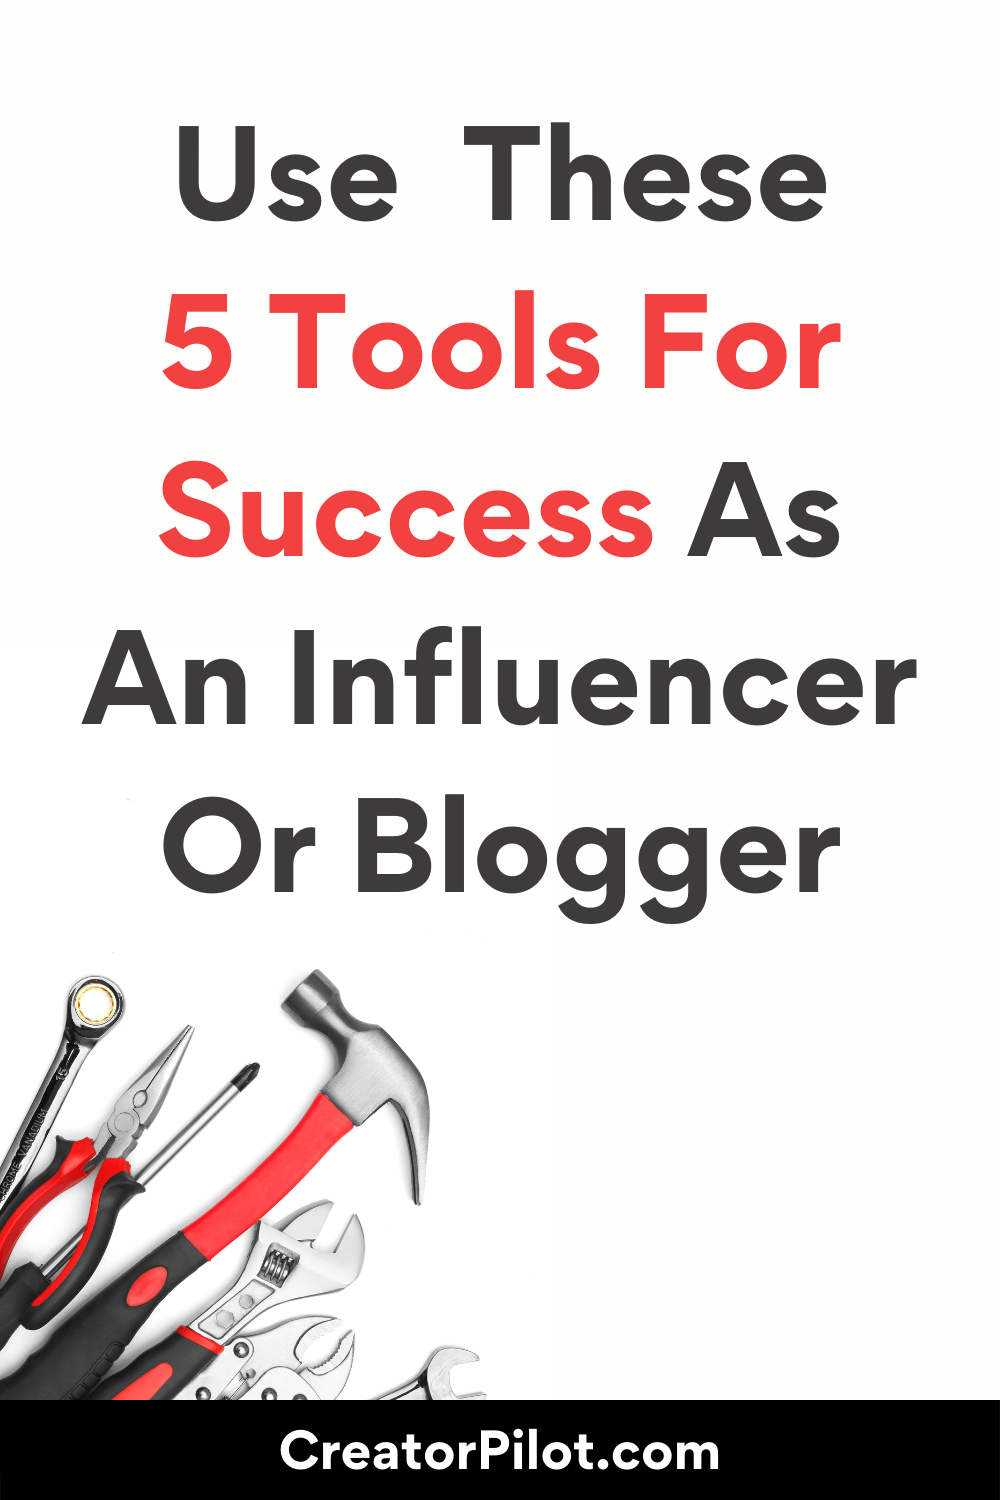 use these 5 tools for success as an influencer